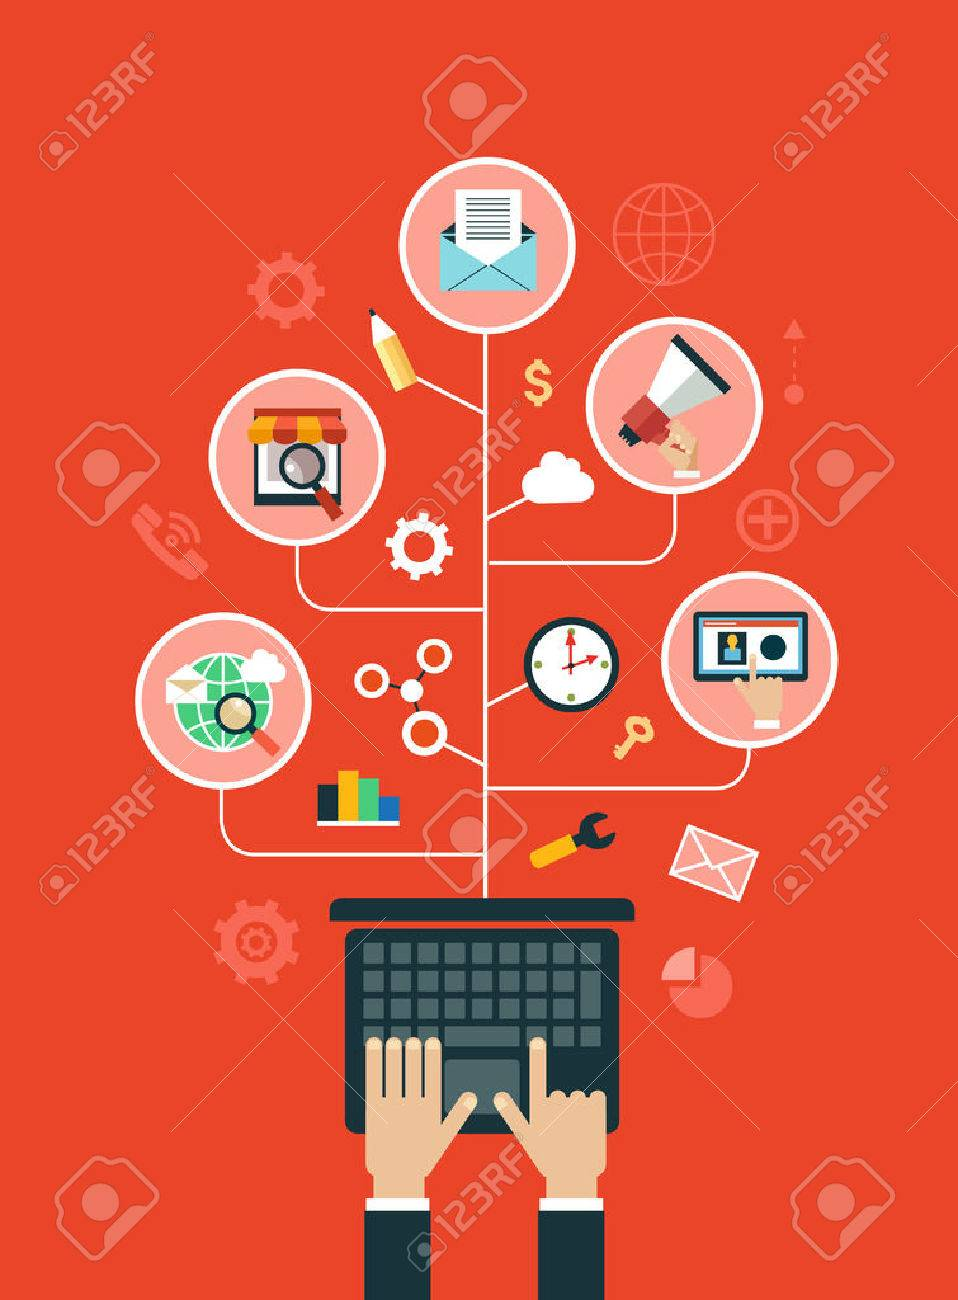 Digital marketing concept. Human hand with a megaphone surrounded by media icons. - 46515315